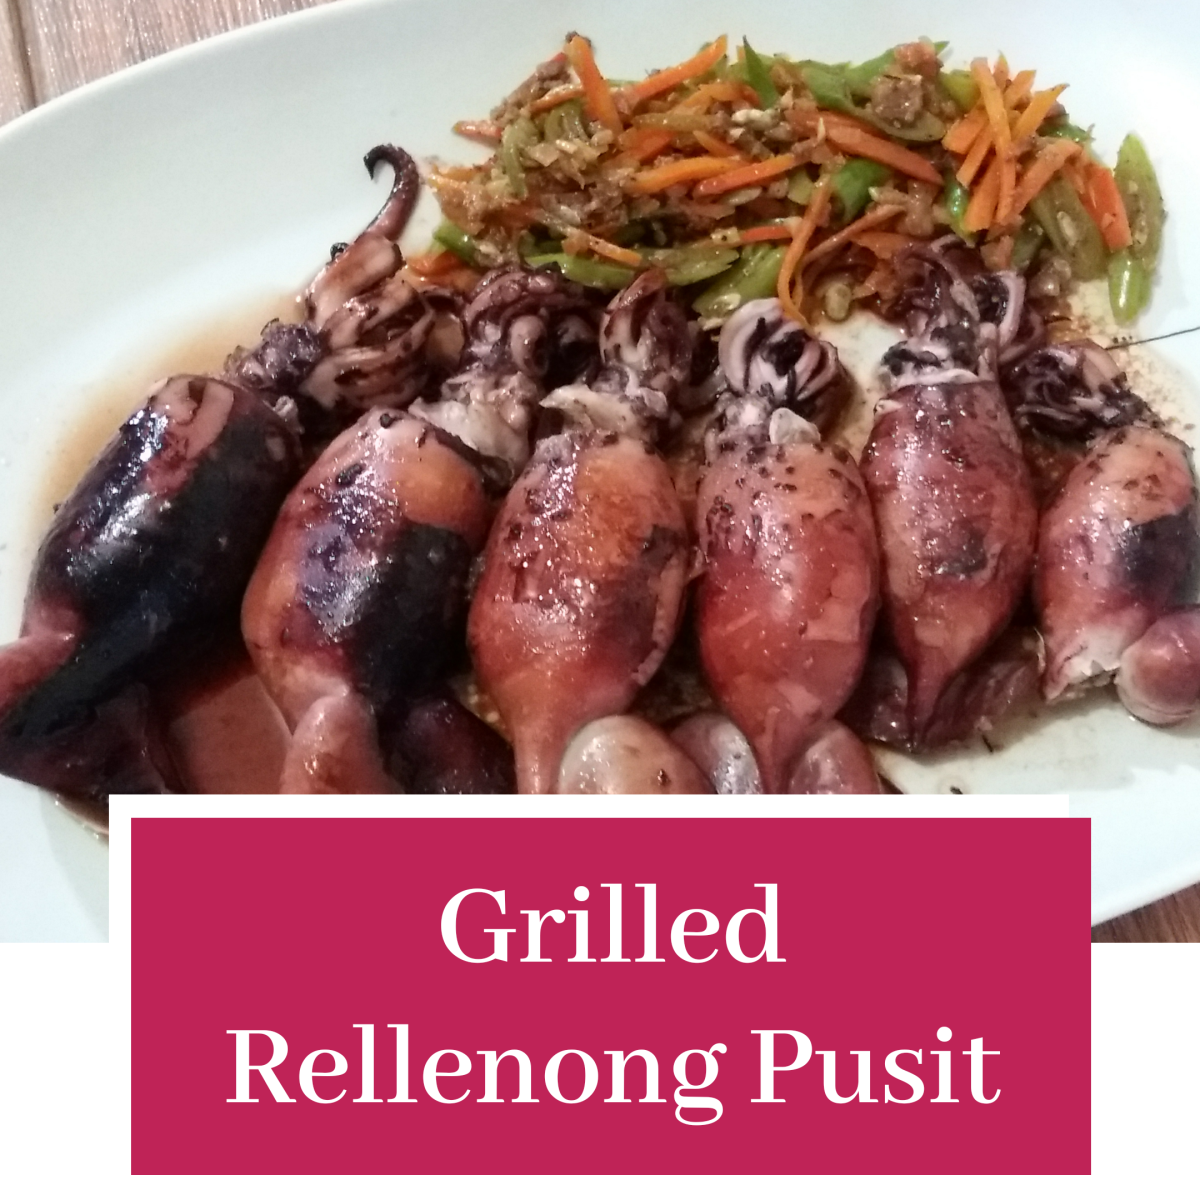 How to Make Grilled Rellenong Pusit (Stuffed Squid)